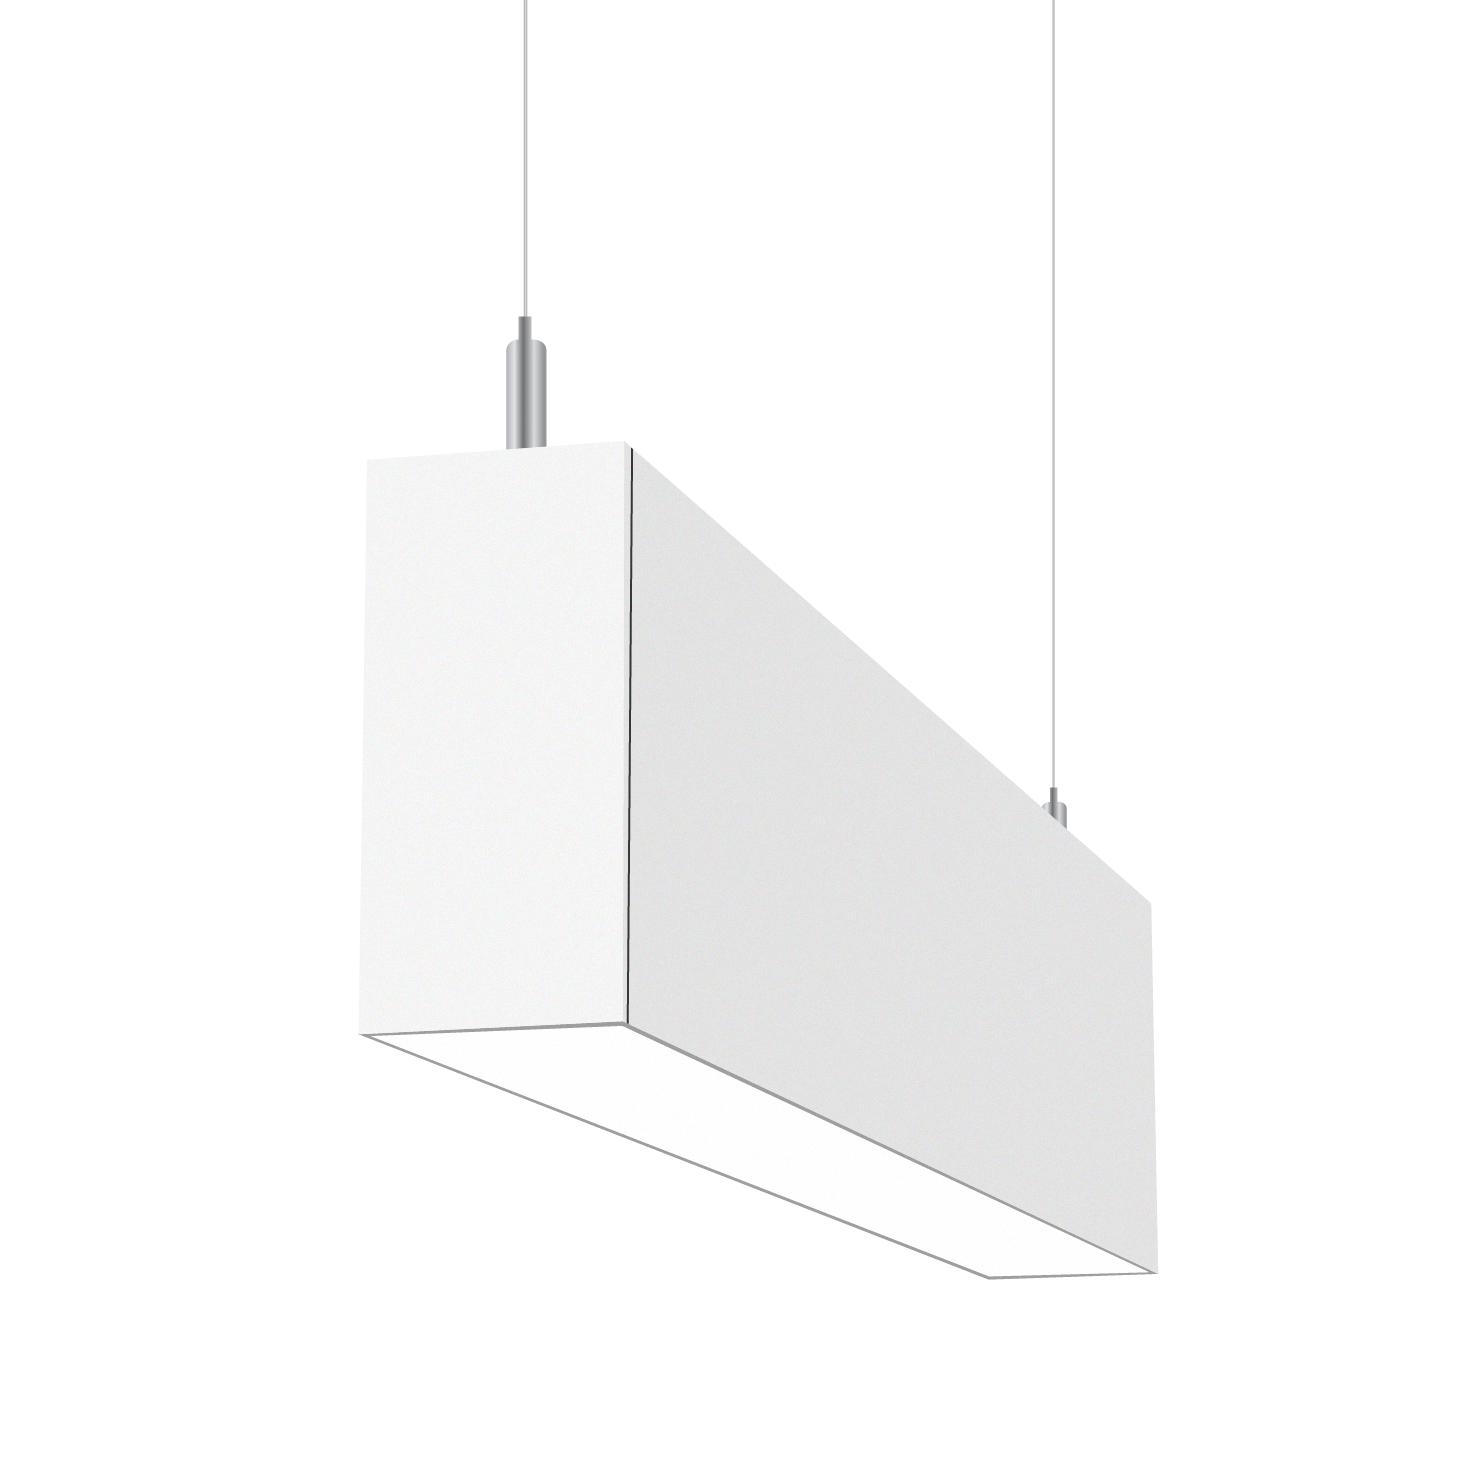 Alcon Lighting 14070 3 Illumine Architectural 5 Channel Color Tuning Led Foot Linear Pendant Direct Indirect Light Strip Fixture